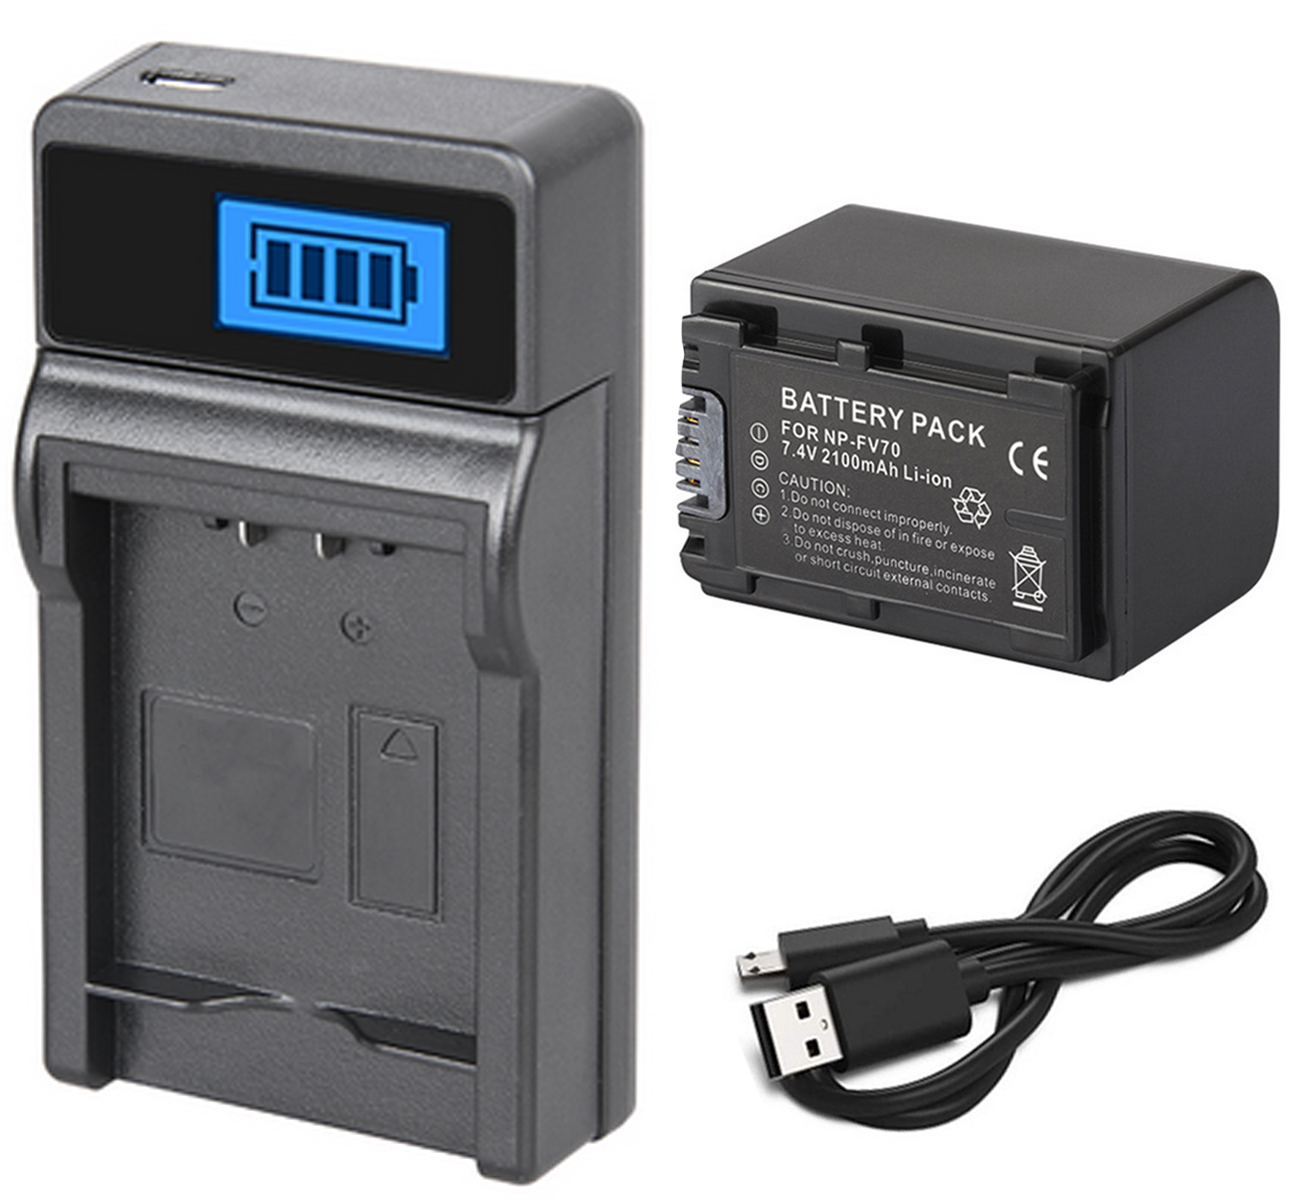 HDR-PJ430V Micro USB Battery Charger for Sony HDR-PJ420V HDR-PJ630V Handycam Camcorder HDR-PJ530